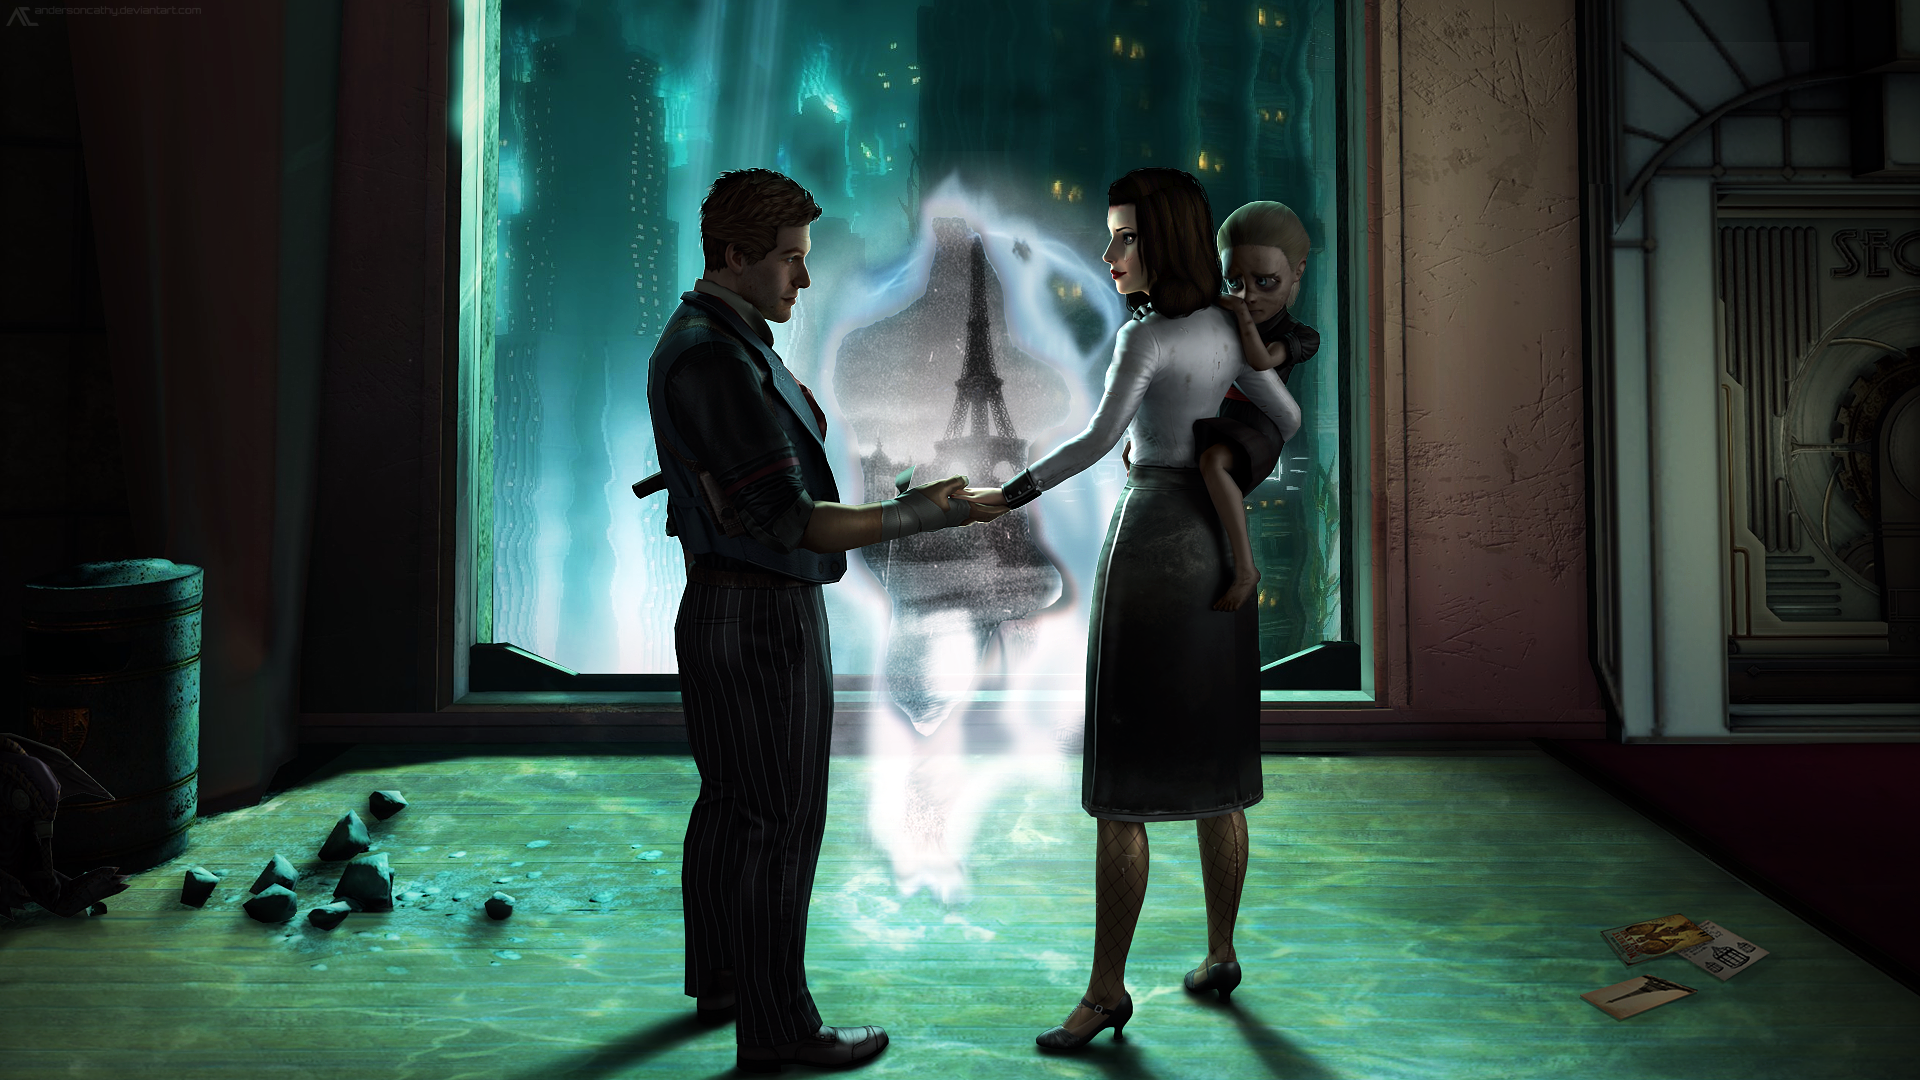 Bioshock Images Propose Desktop Wallpapers Bioshock